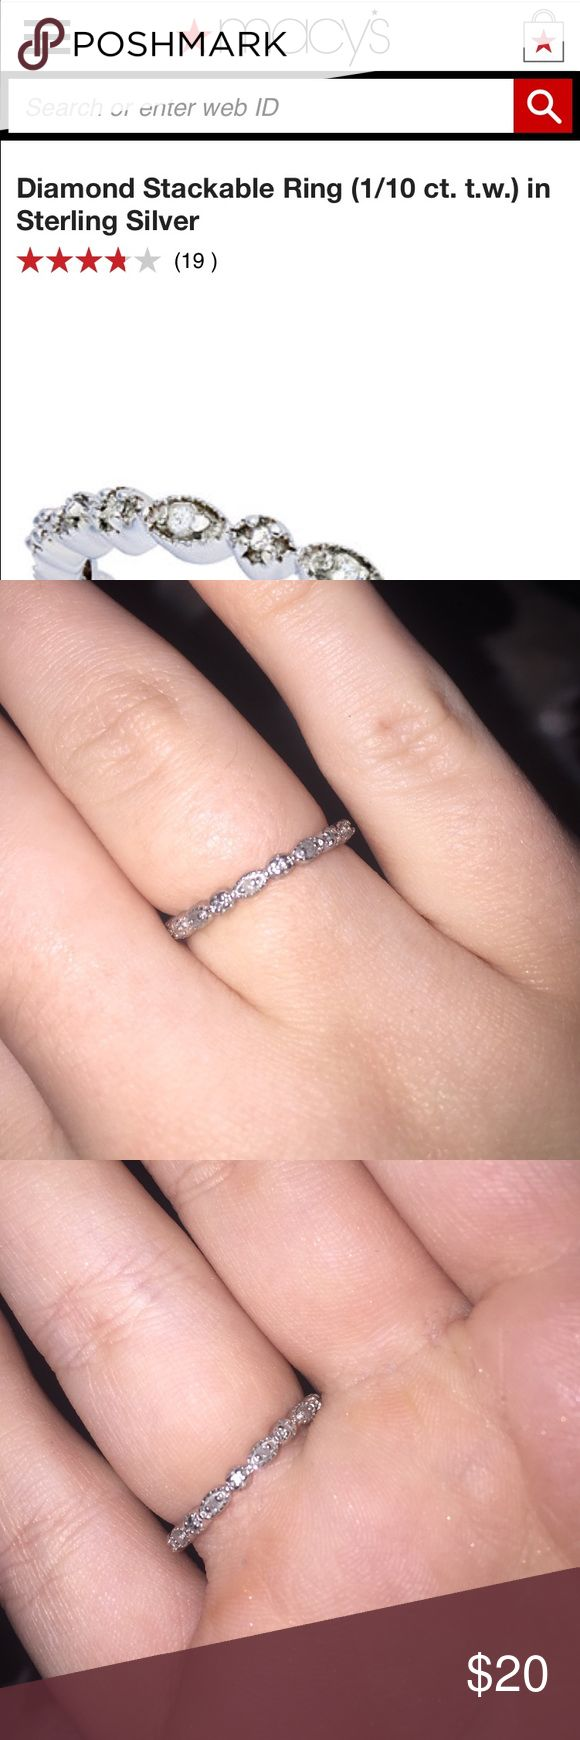 1/10 cttw Diamond Stackable Ring (ster. silver) A very pretty and dainty small diamond ring! It's made to be stacked with others! It's sterling silver! The diamonds aren't the best quality and don't shine that great, but I think a good cleaning would help this! Worn for about a month. Jewelry Rings